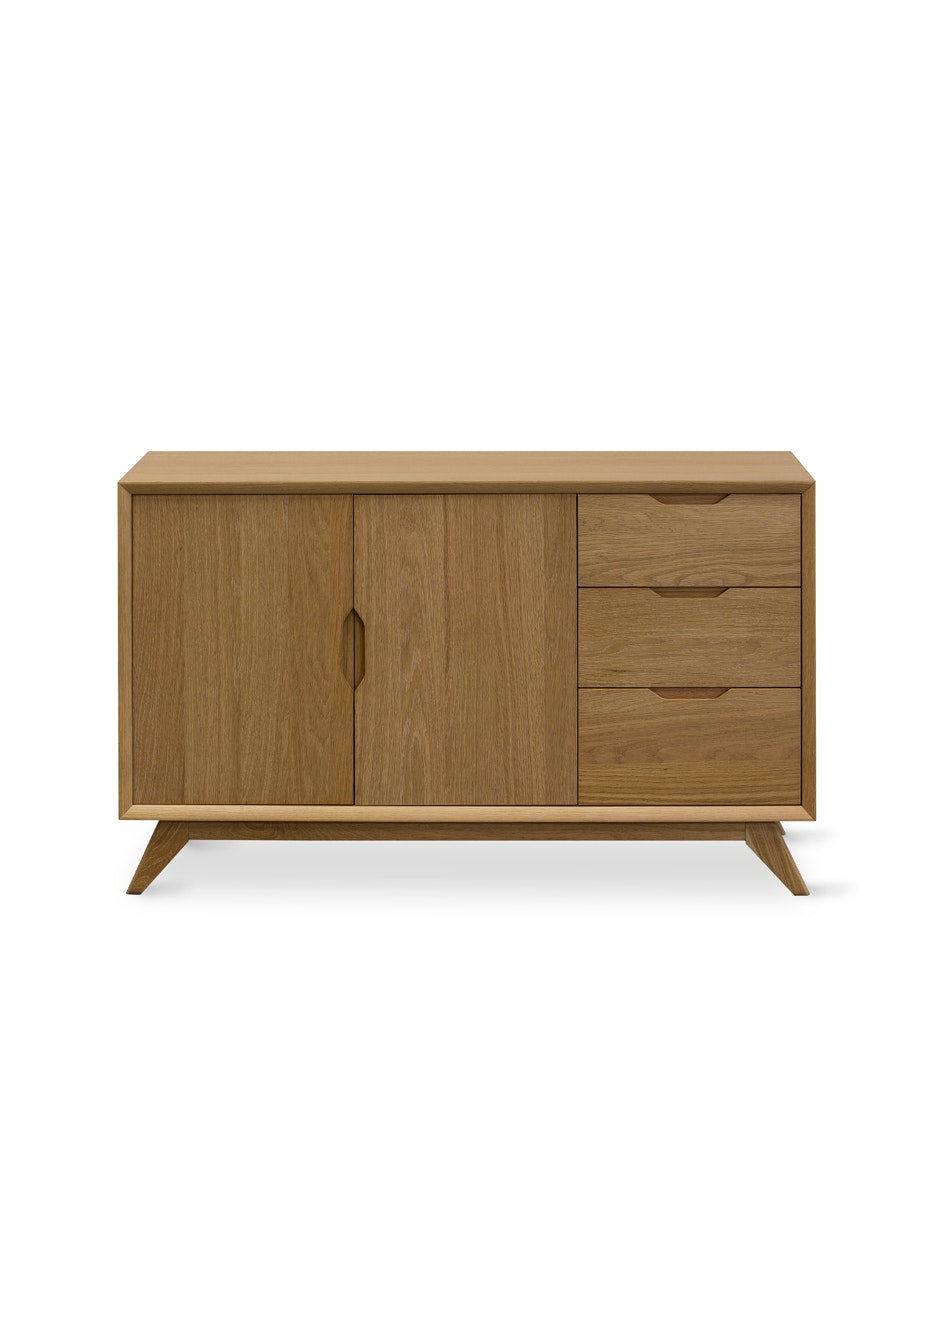 Furniture By Design - Milano Sideboard- Light Oak